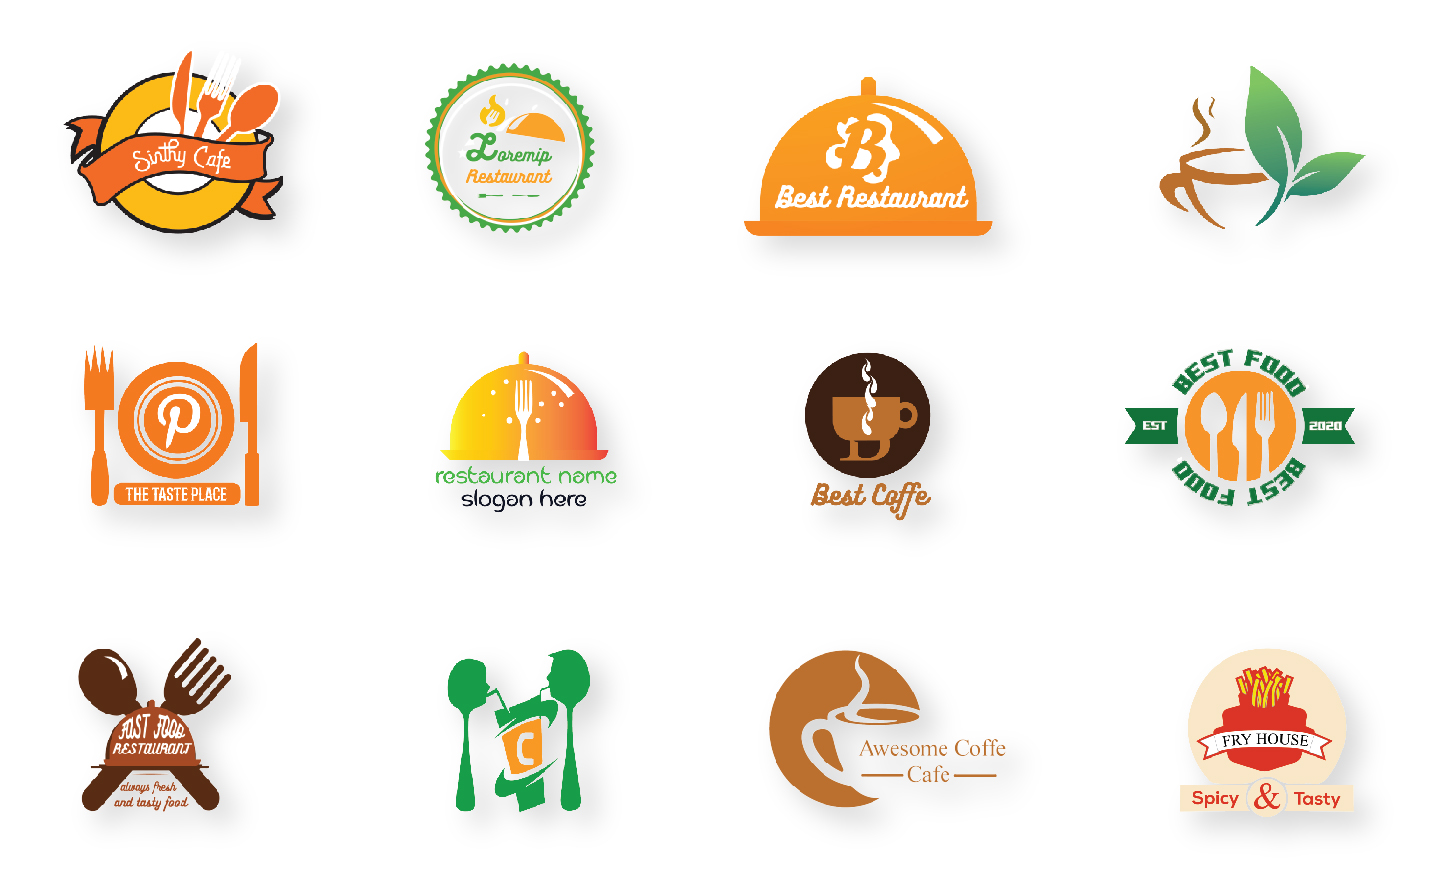 I Will Do Amazing Healthy Food Logo Cafe Logo Restaurant Logo Or Any Design In 24 Hours For 2 Seoclerks